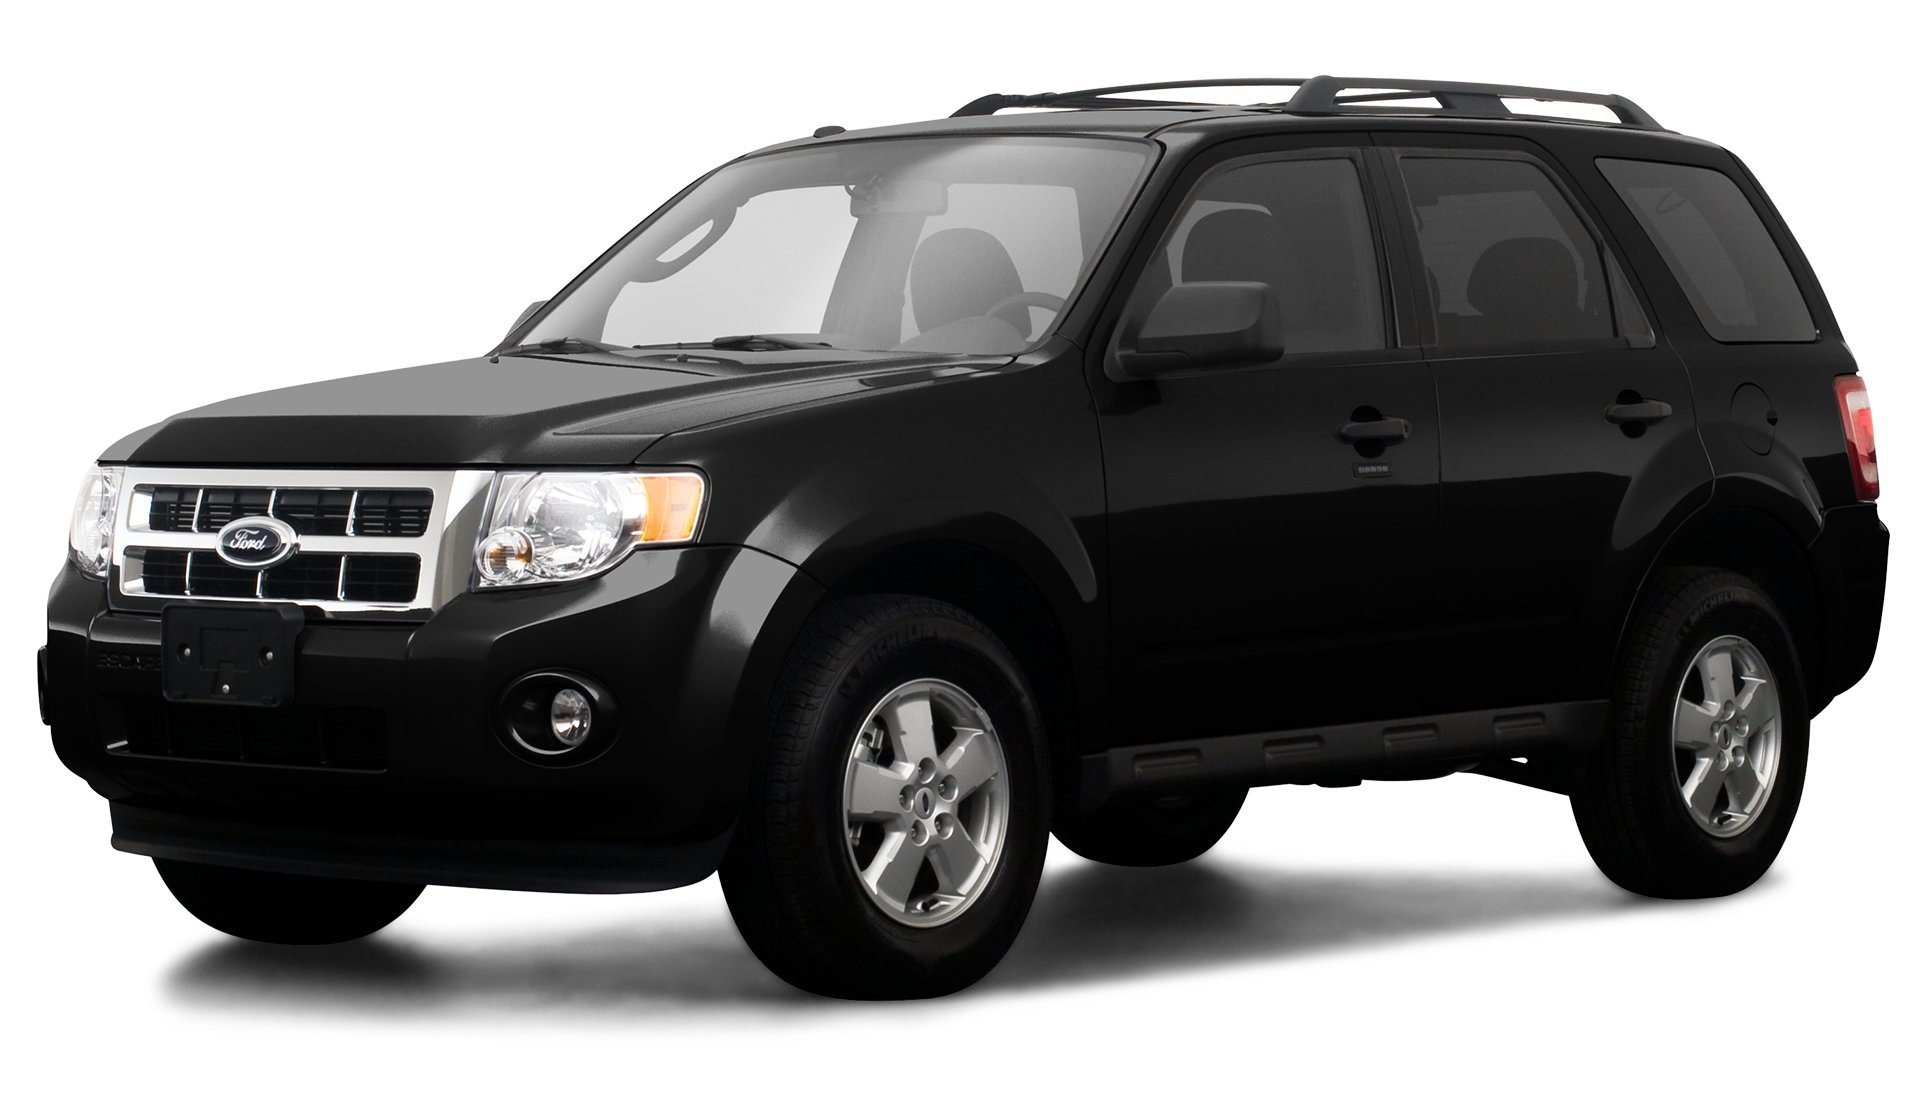 ... 2009 Ford Escape XLT, Front Wheel Drive 4-Door V6 Automatic  Transmission ...